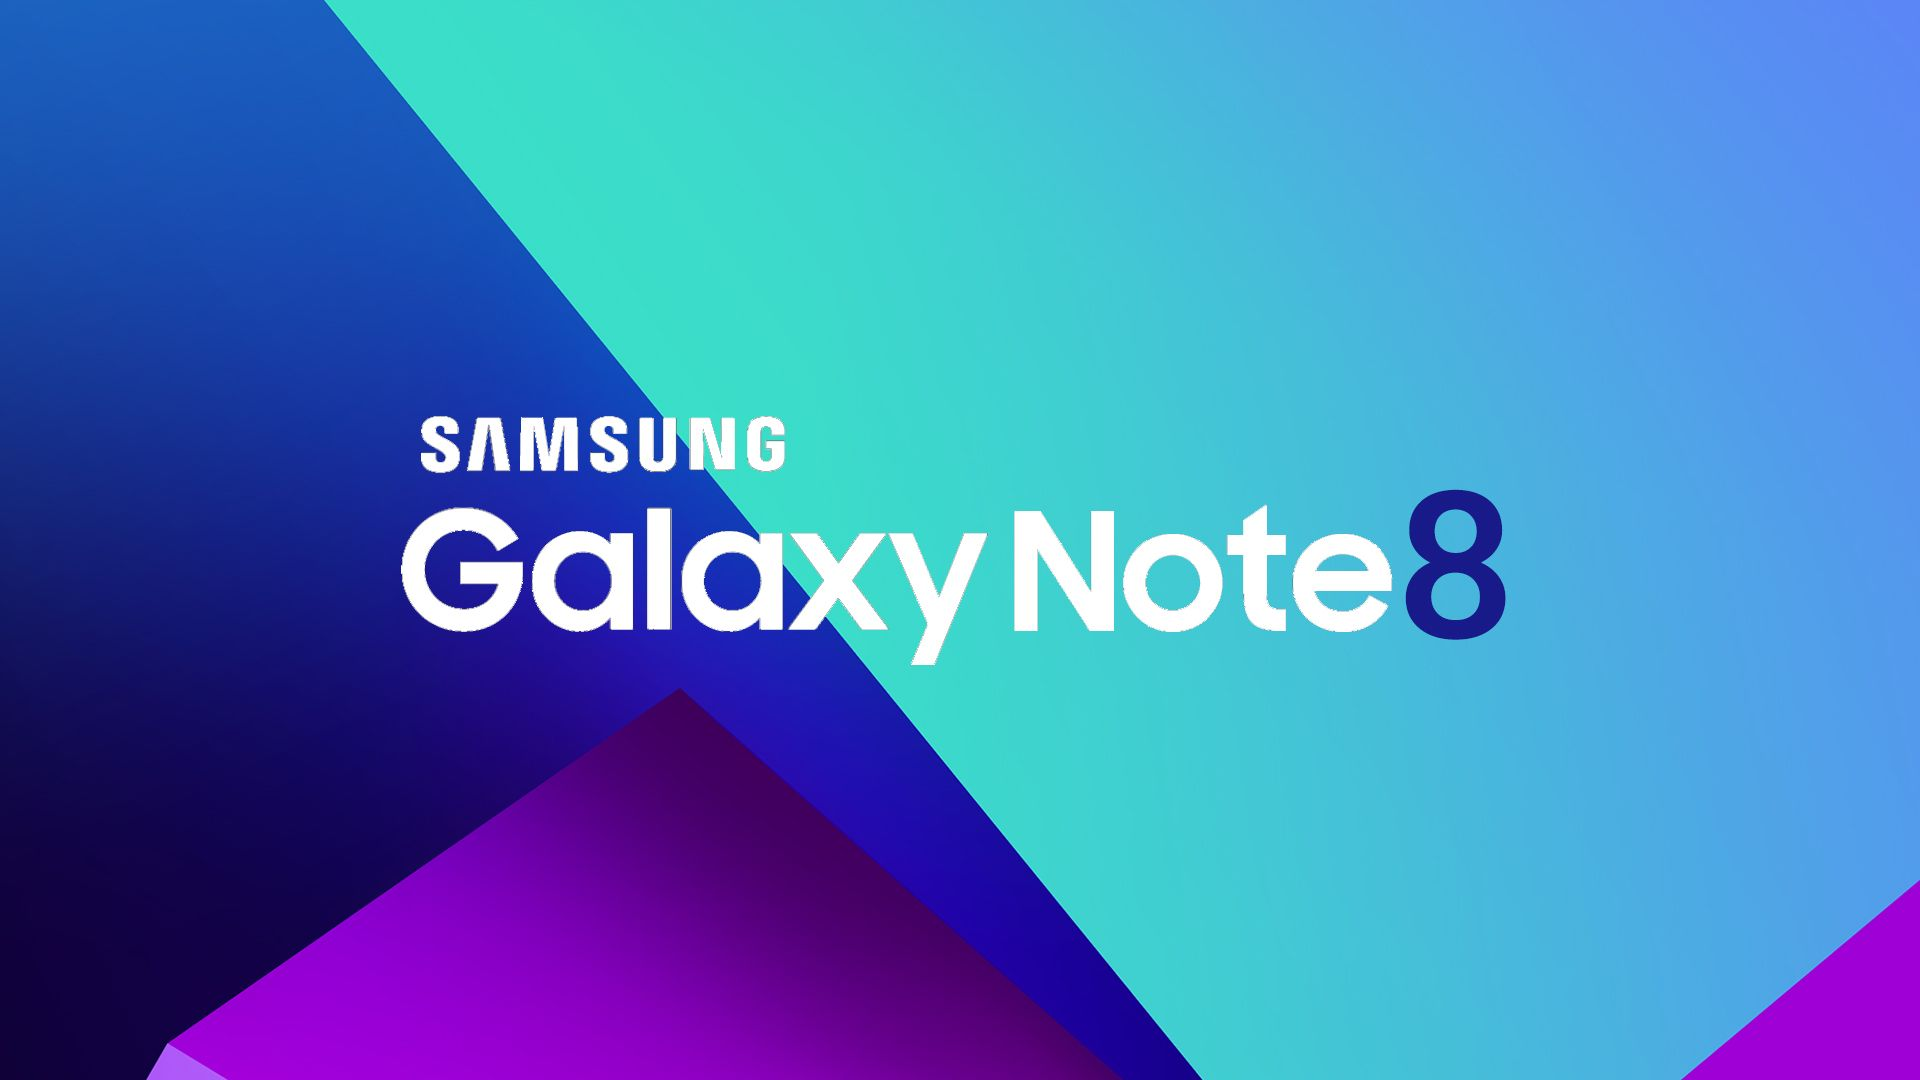 Galaxy Note 8 Logo - Samsung Galaxy Note 8 teasers have begun - Cashify Blog